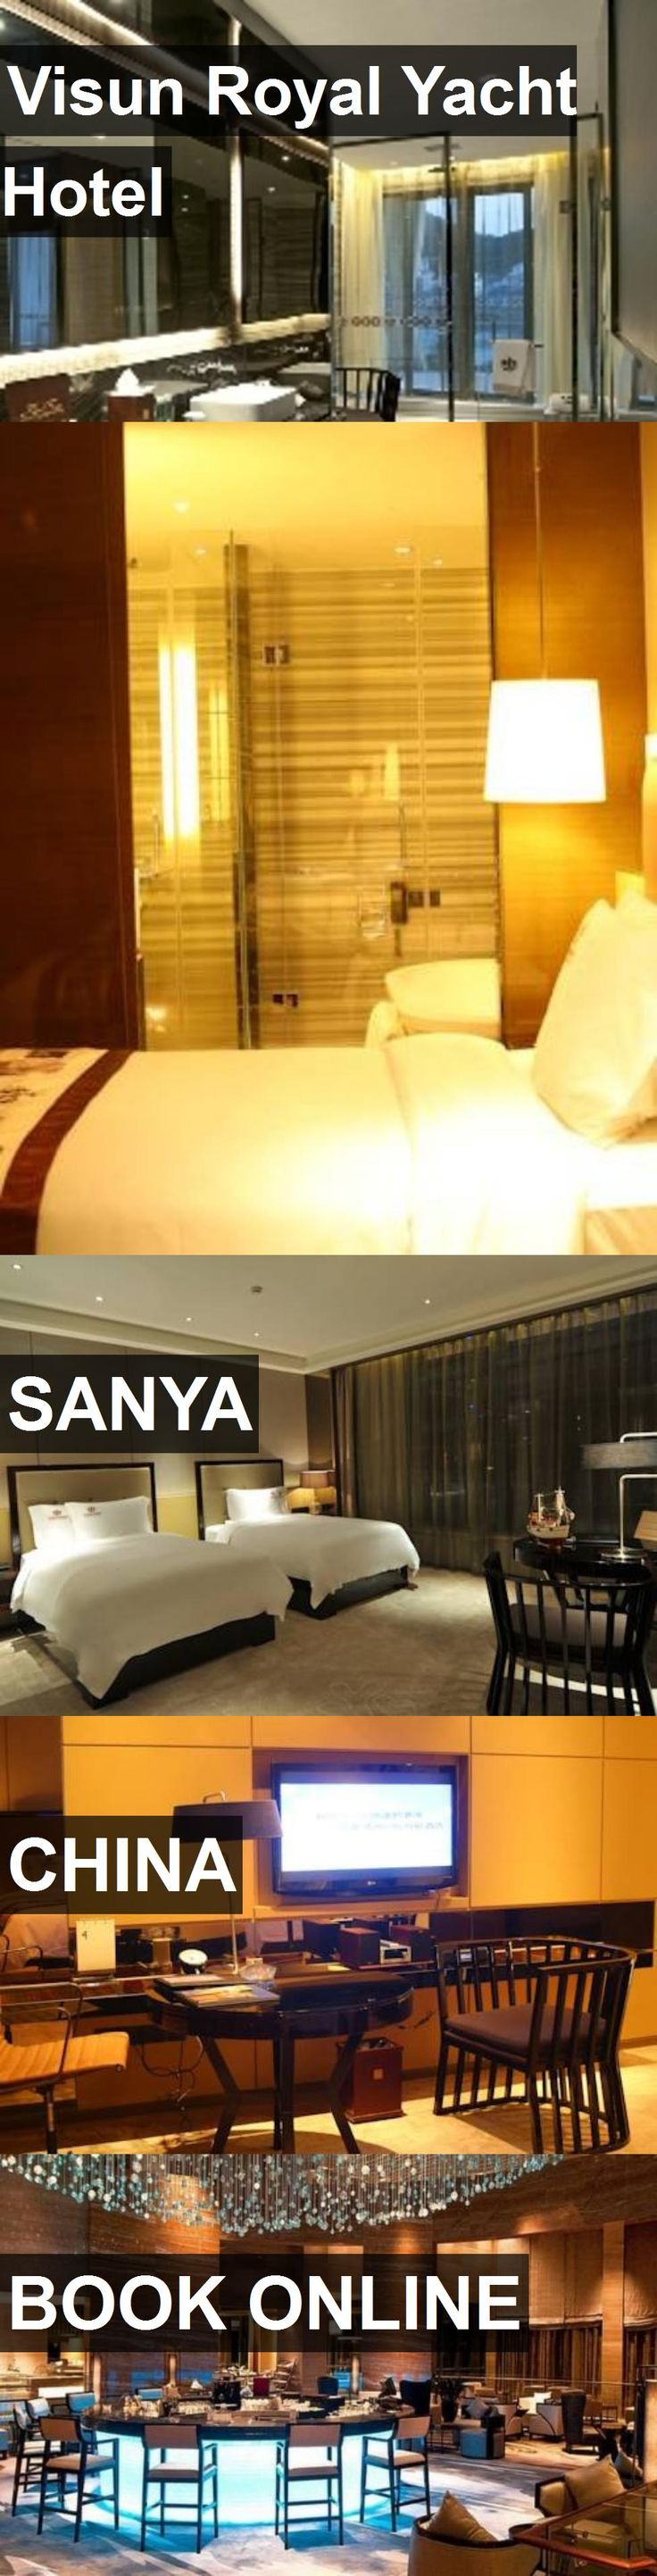 Hotel Visun Royal Yacht Hotel in Sanya, China. For more information, photos, reviews and best prices please follow the link. #China #Sanya #VisunRoyalYachtHotel #hotel #travel #vacation